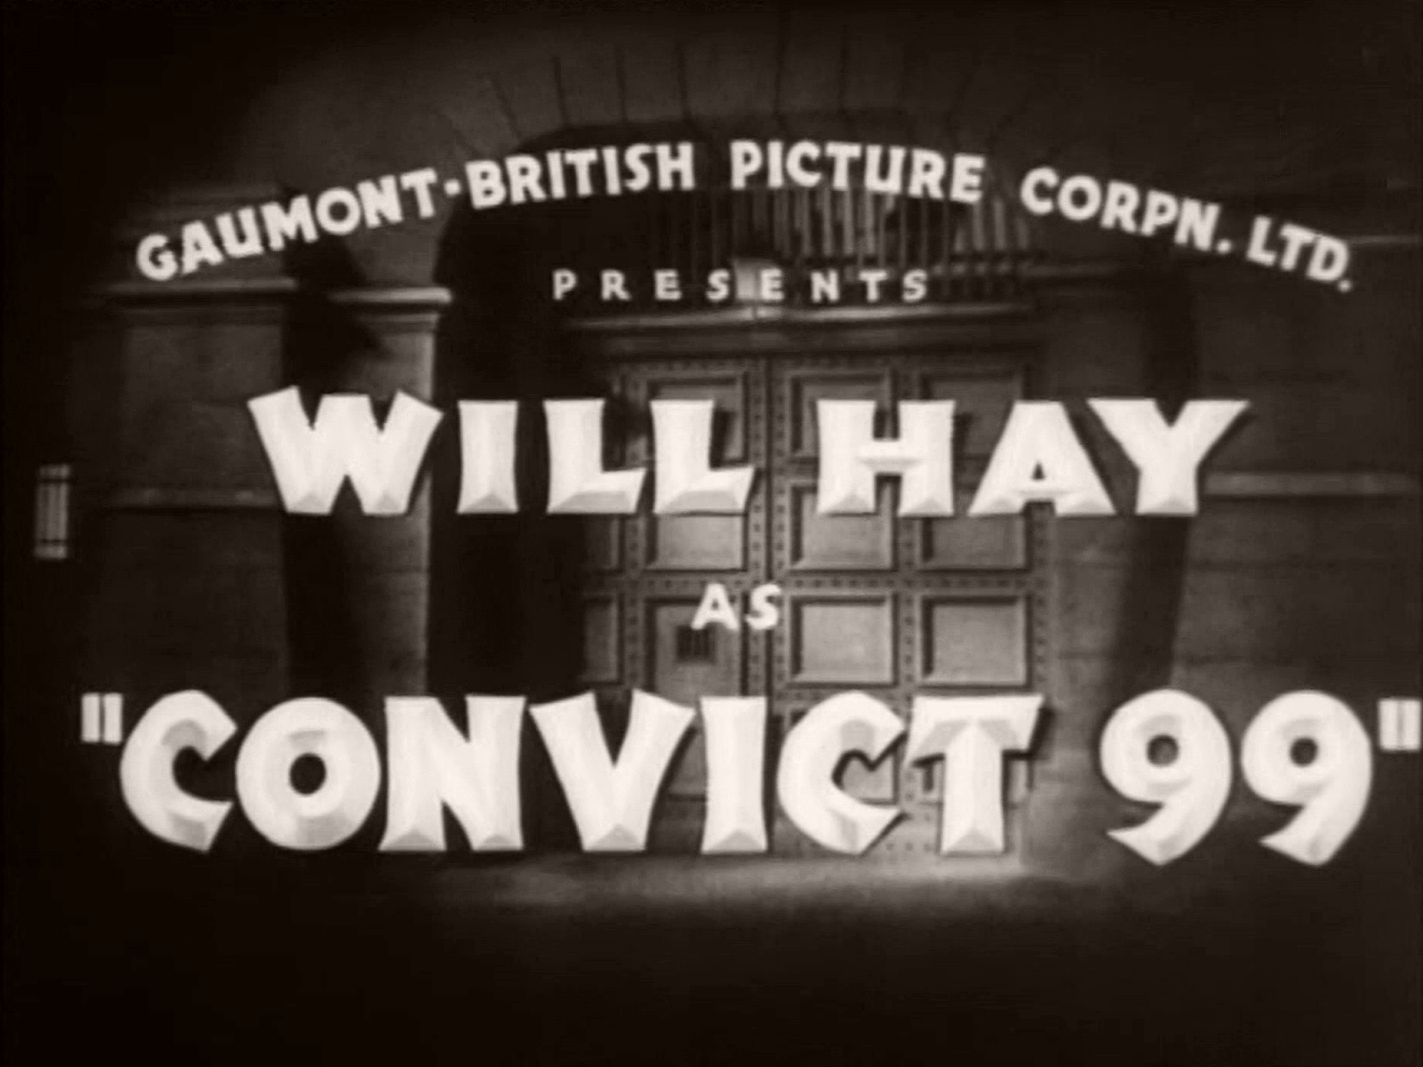 Main title from Convict 99 (1938) (2).  Gaumont-British Picture Corpn Ltd presents Will Hay as 'Convict 99'